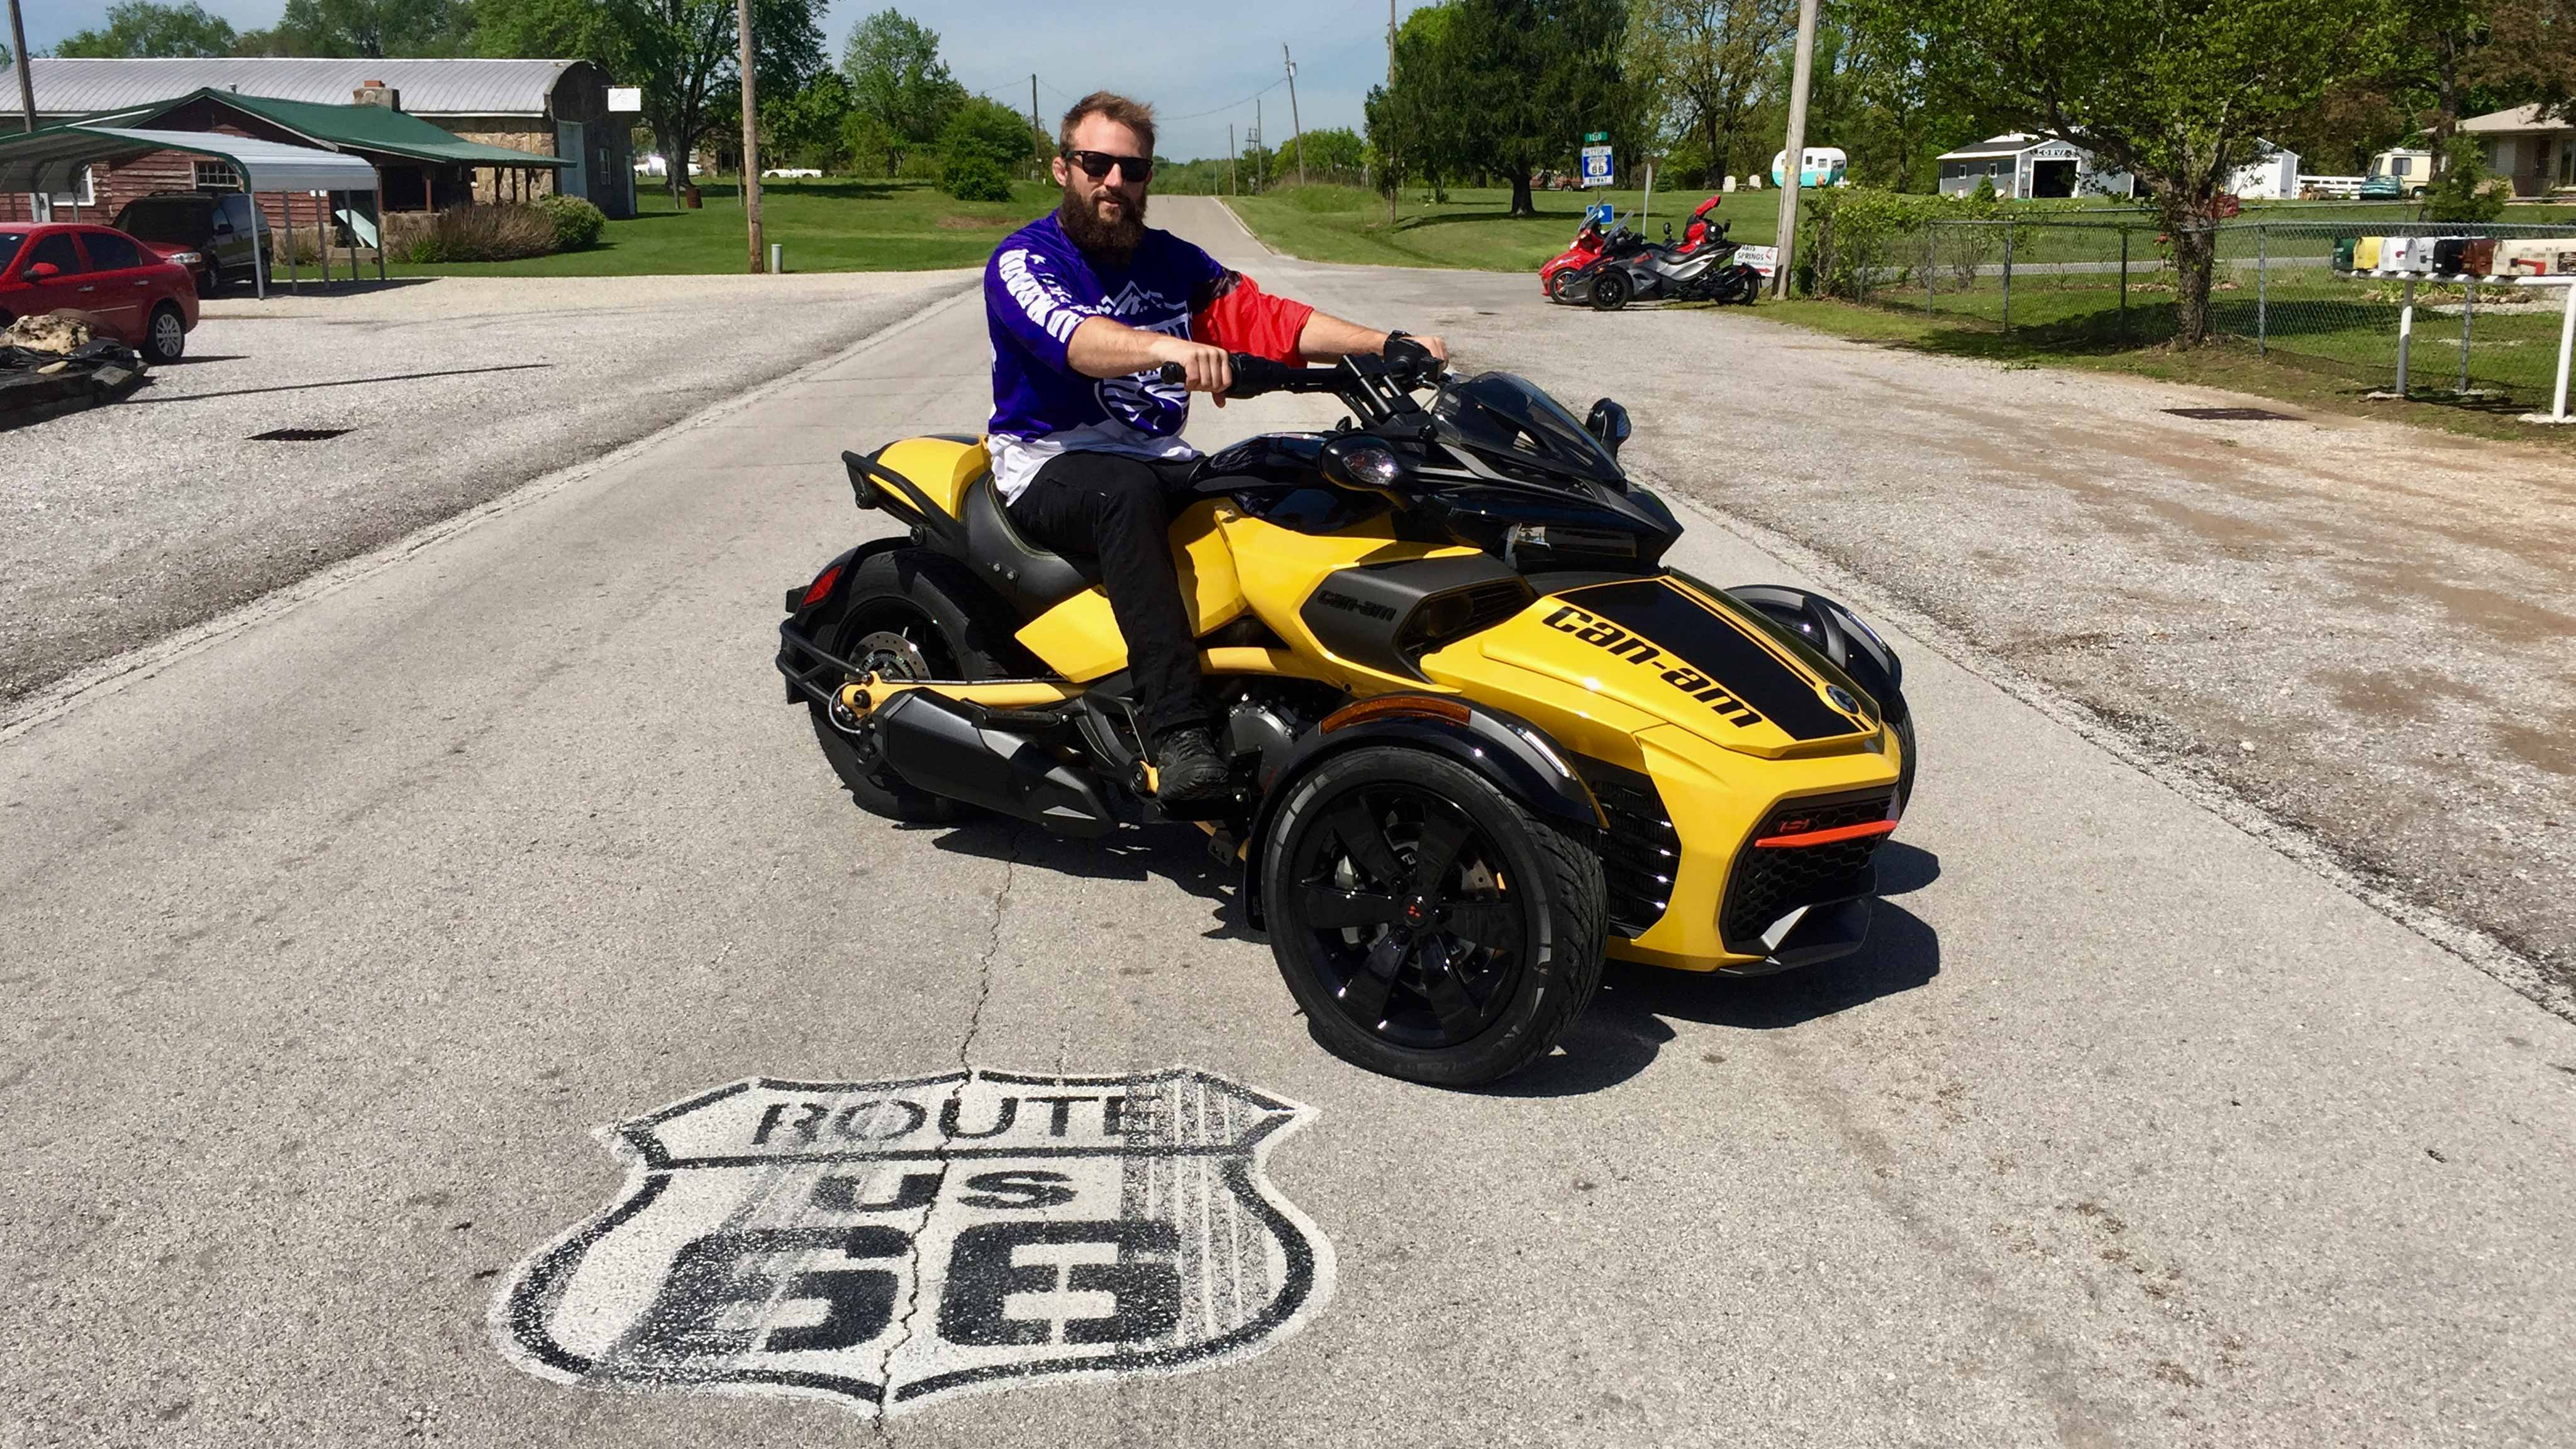 Kendell Madden sitting on his Can-Am Spyder